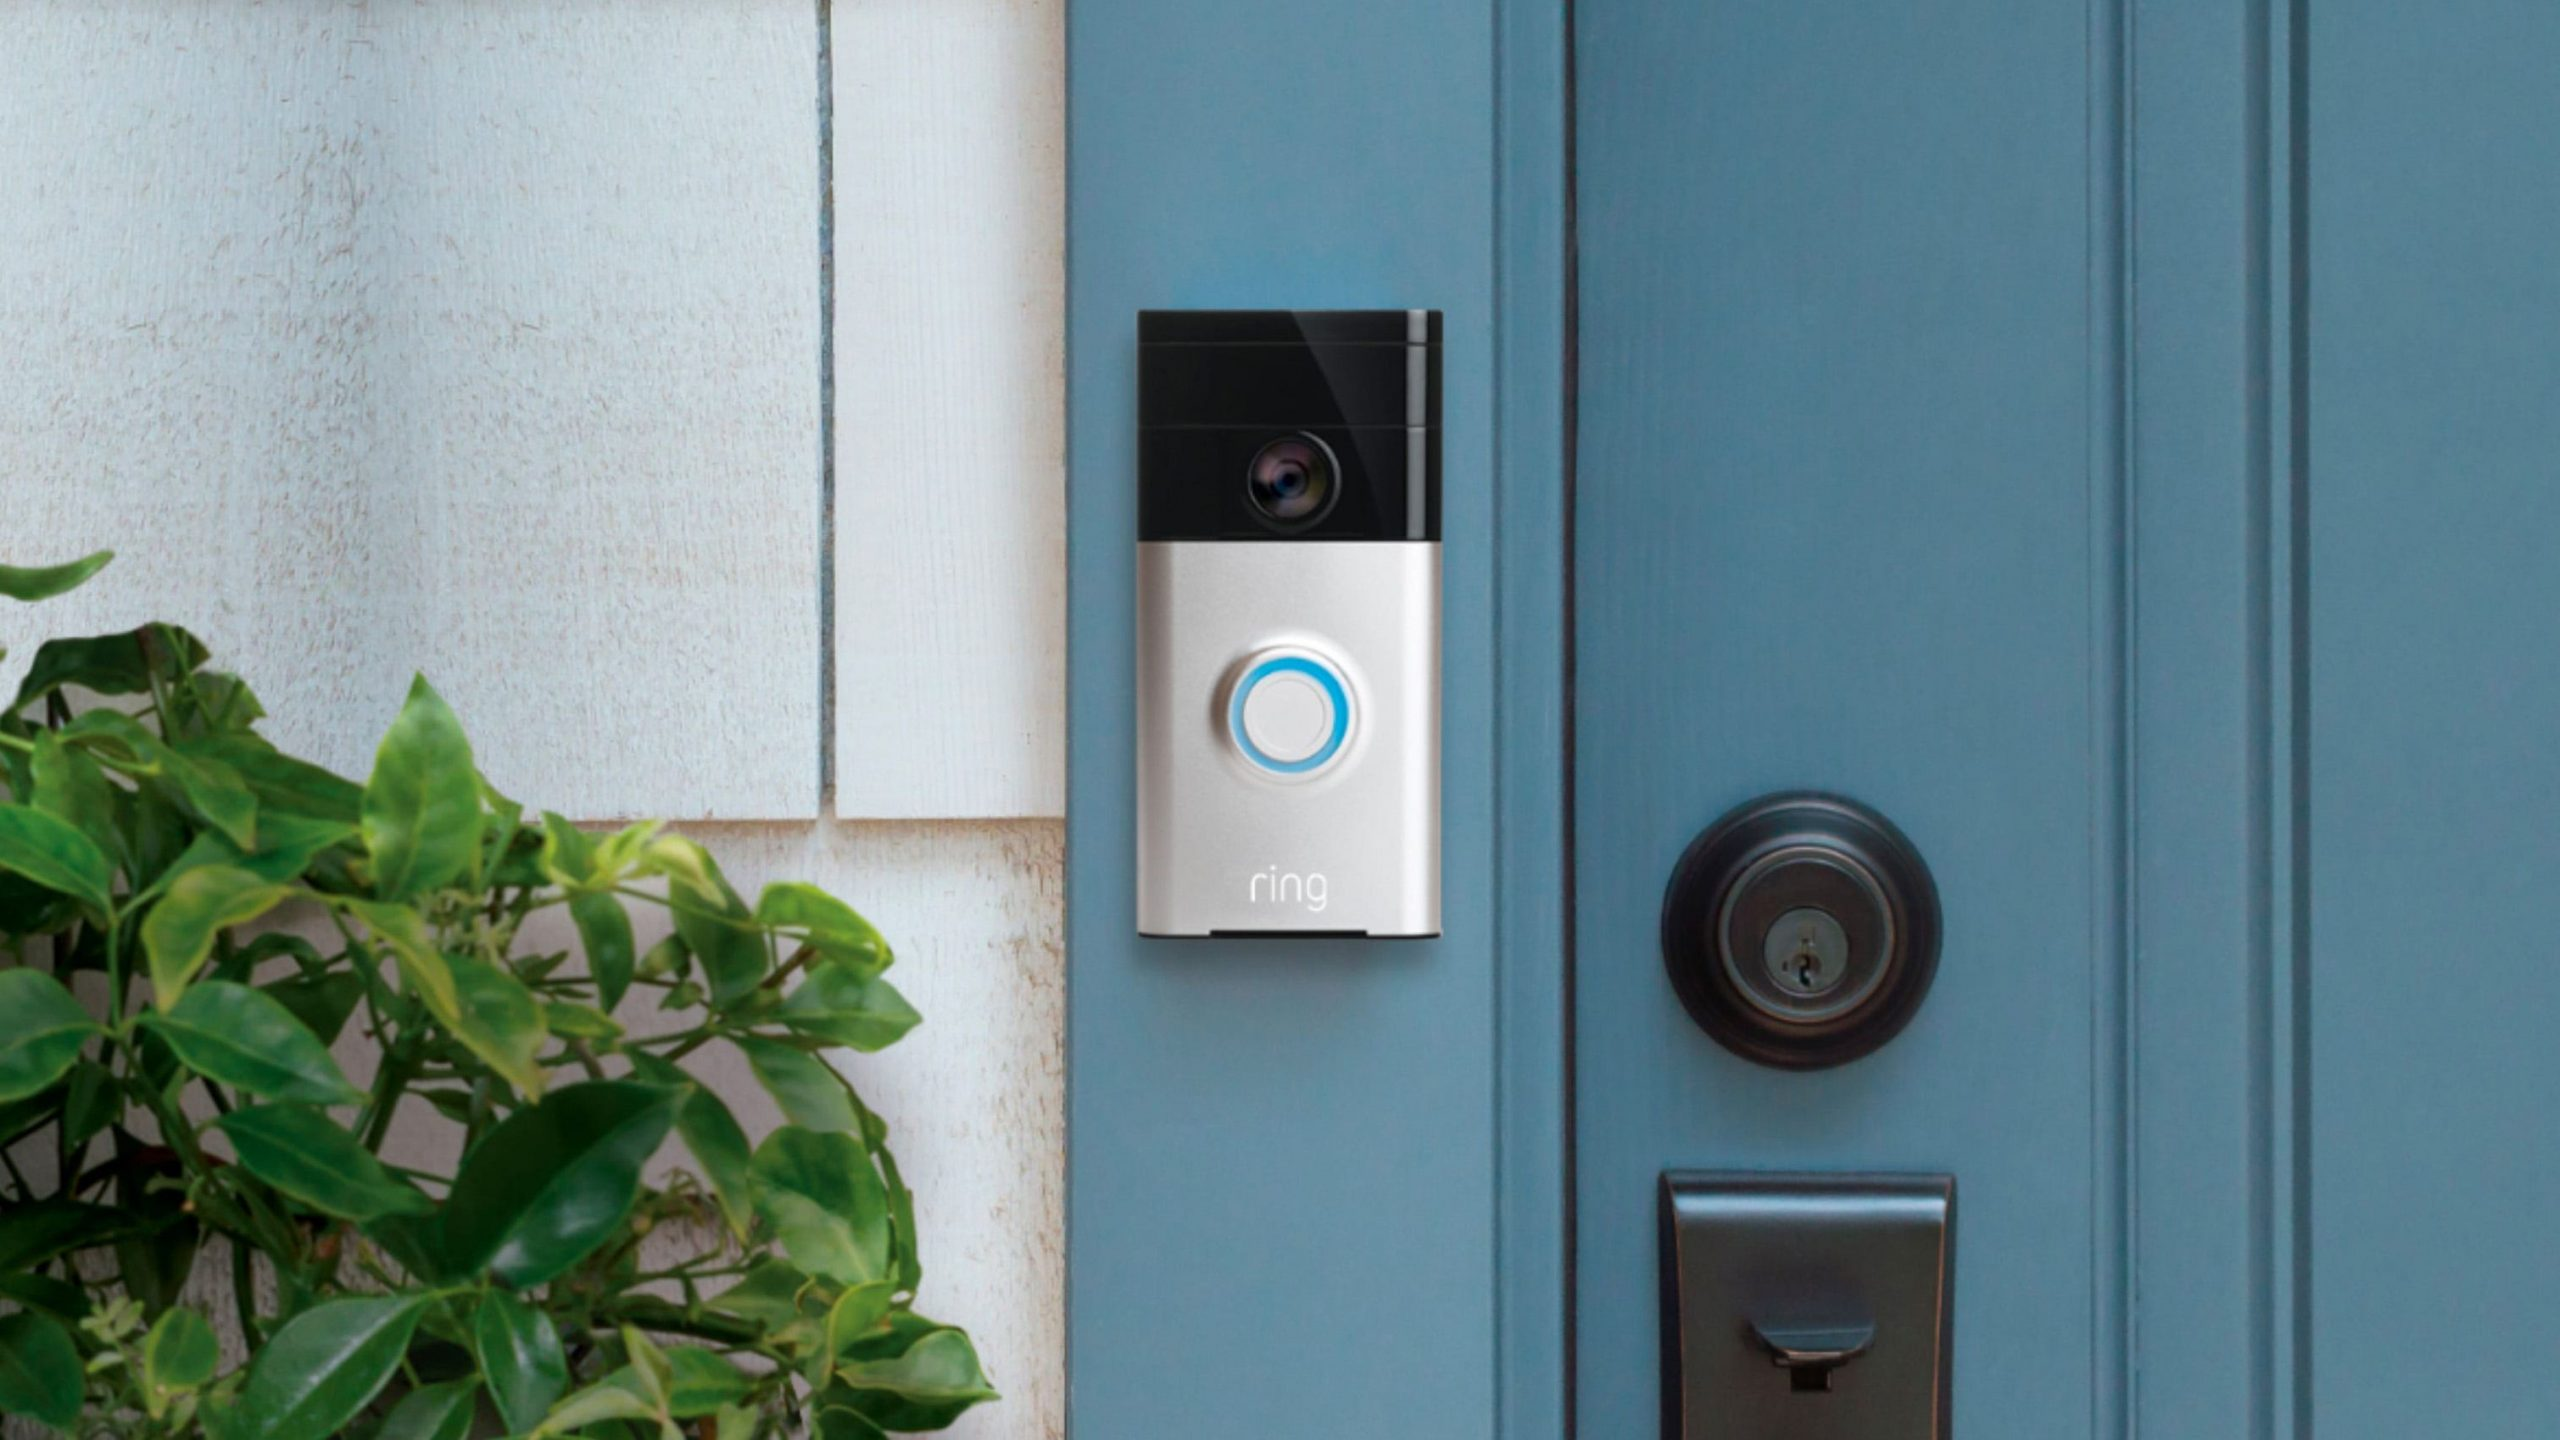 Ring recalls 350,000 smart video doorbells for potential fire hazard after 23 devices caused property damage